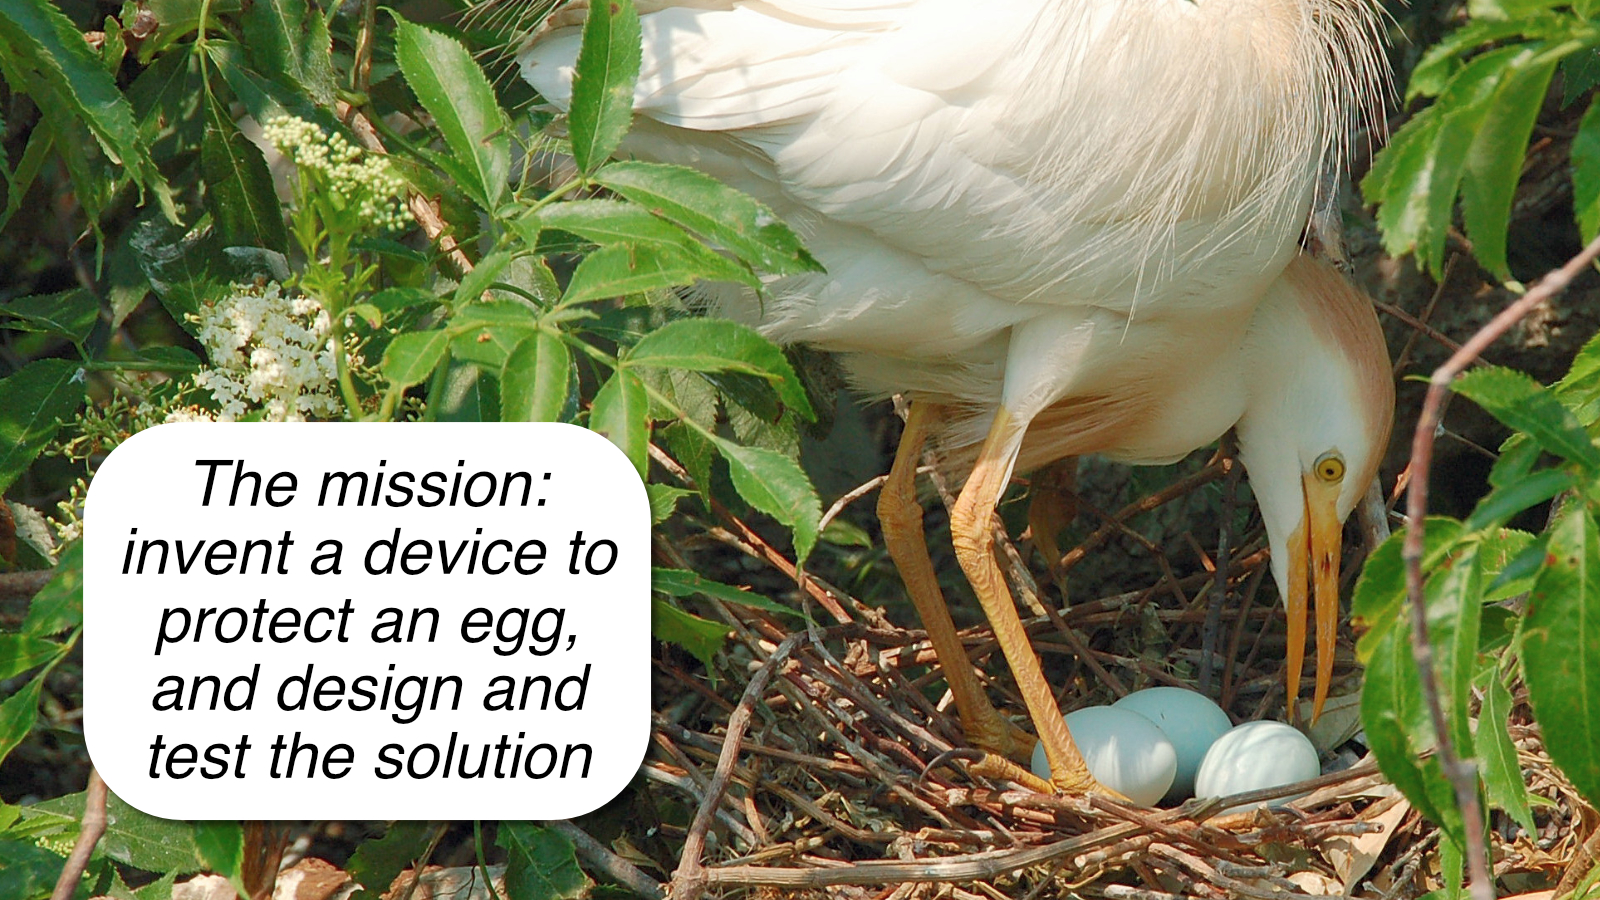 If your class could invent a device to protect an egg, what would it look like?